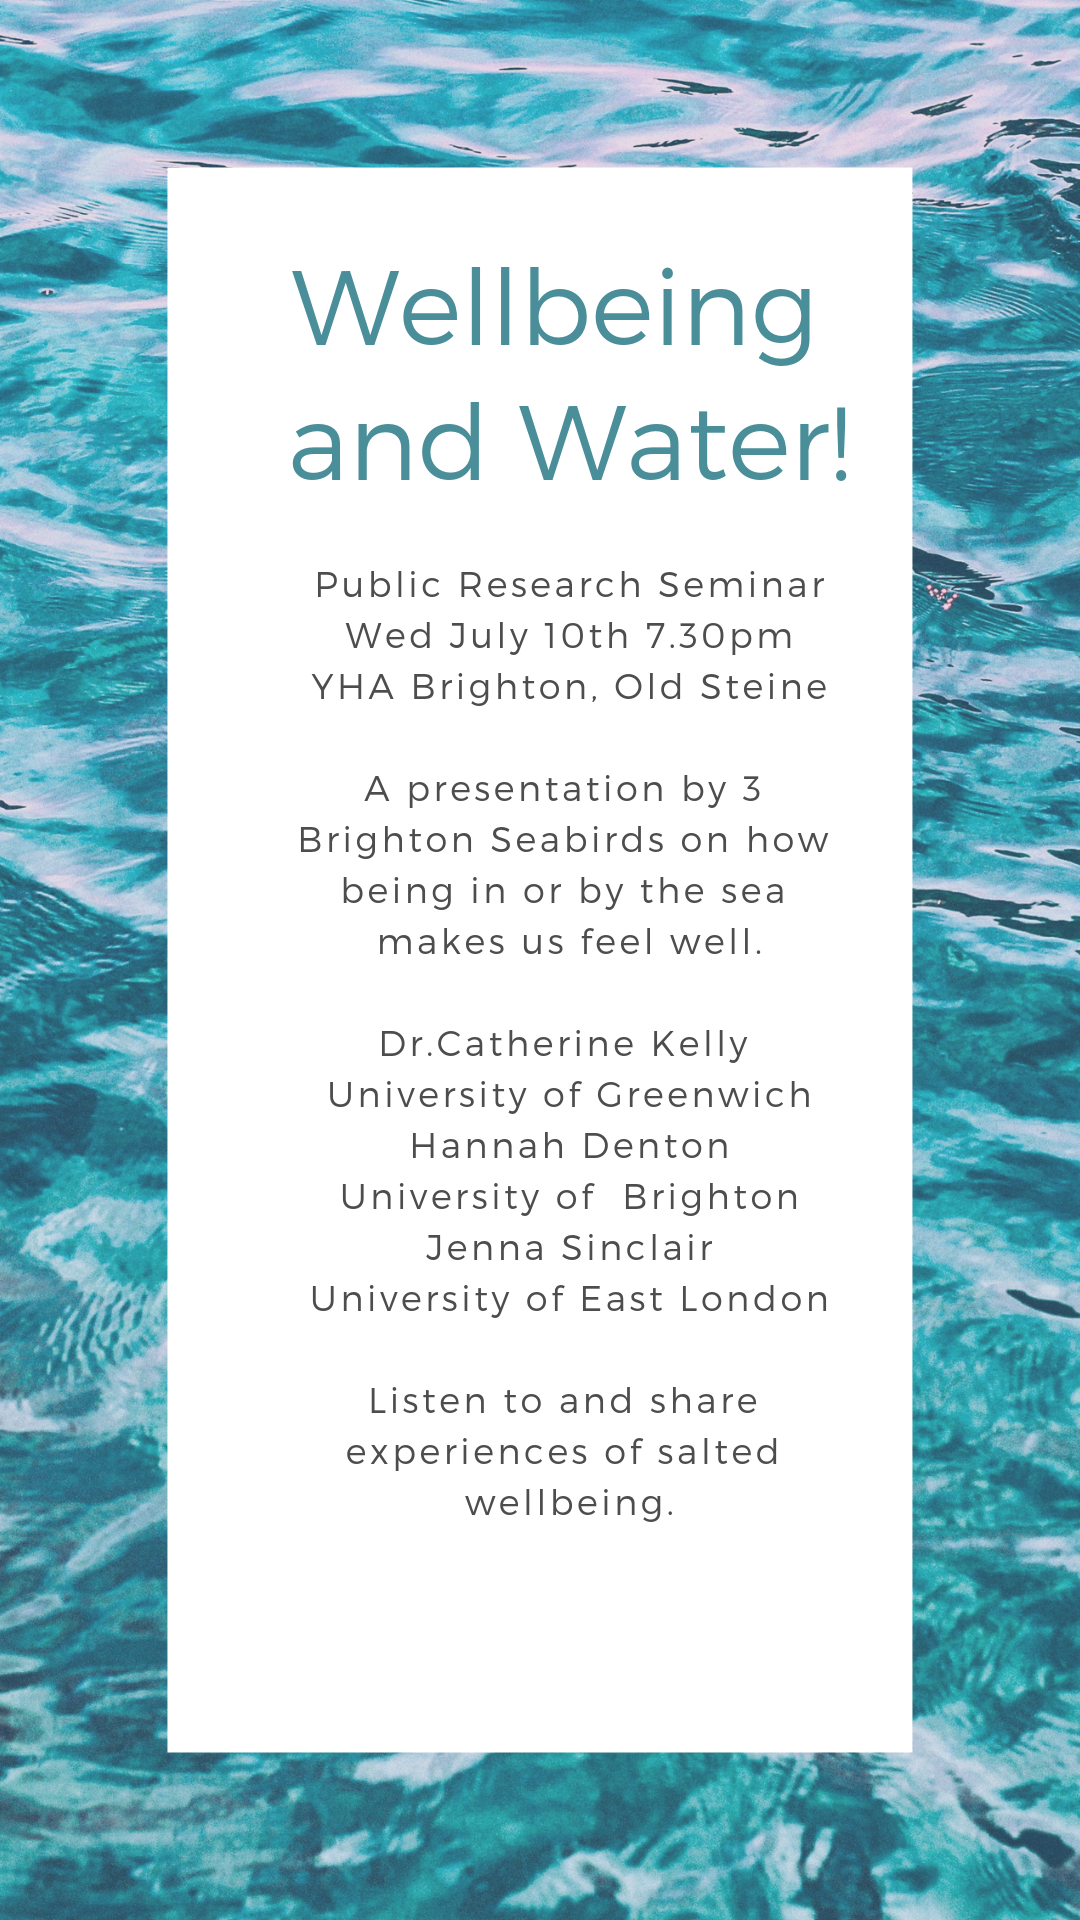 Wellbeing and Water - Public Research Seminar